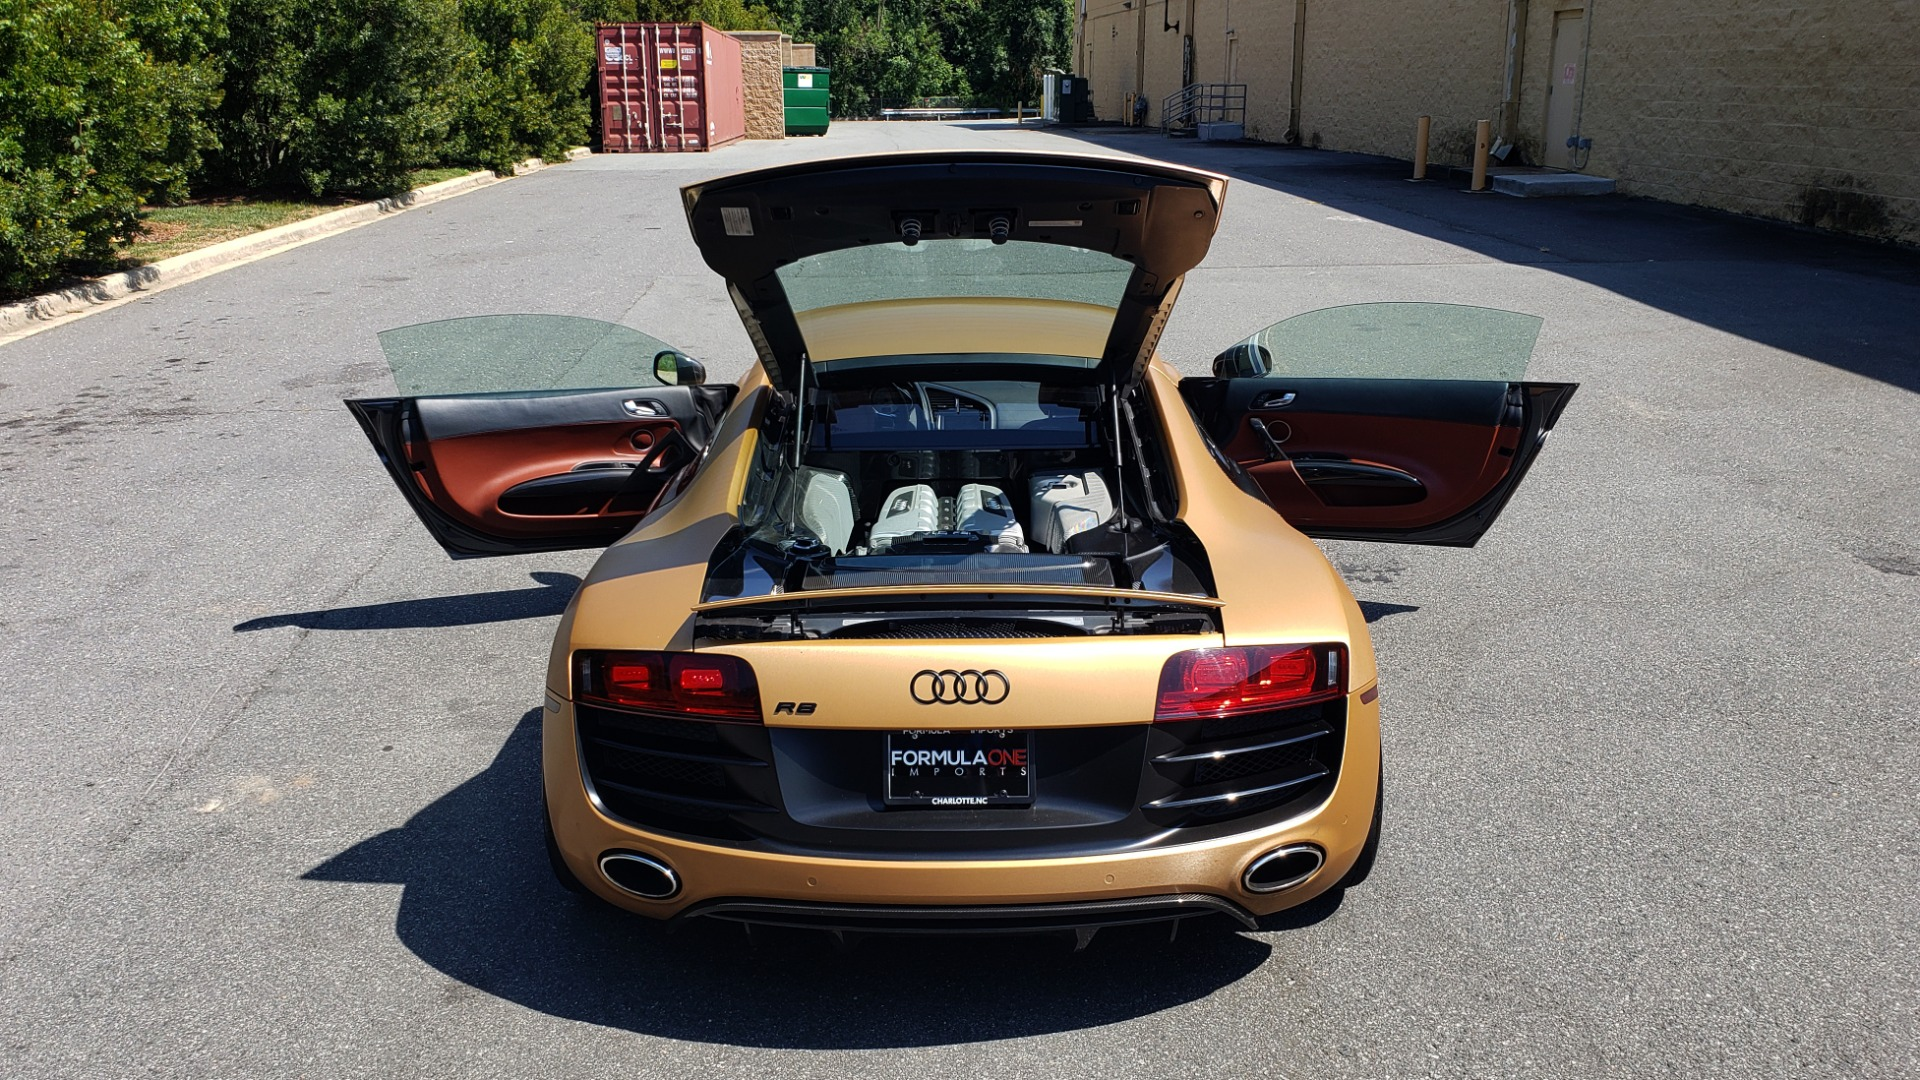 Used 2012 Audi R8 V10 5.2L / CUST WRAP BRUSHED BRONZE / NAV / B&O SOUND / CUST 19IN WHLS for sale $79,999 at Formula Imports in Charlotte NC 28227 13